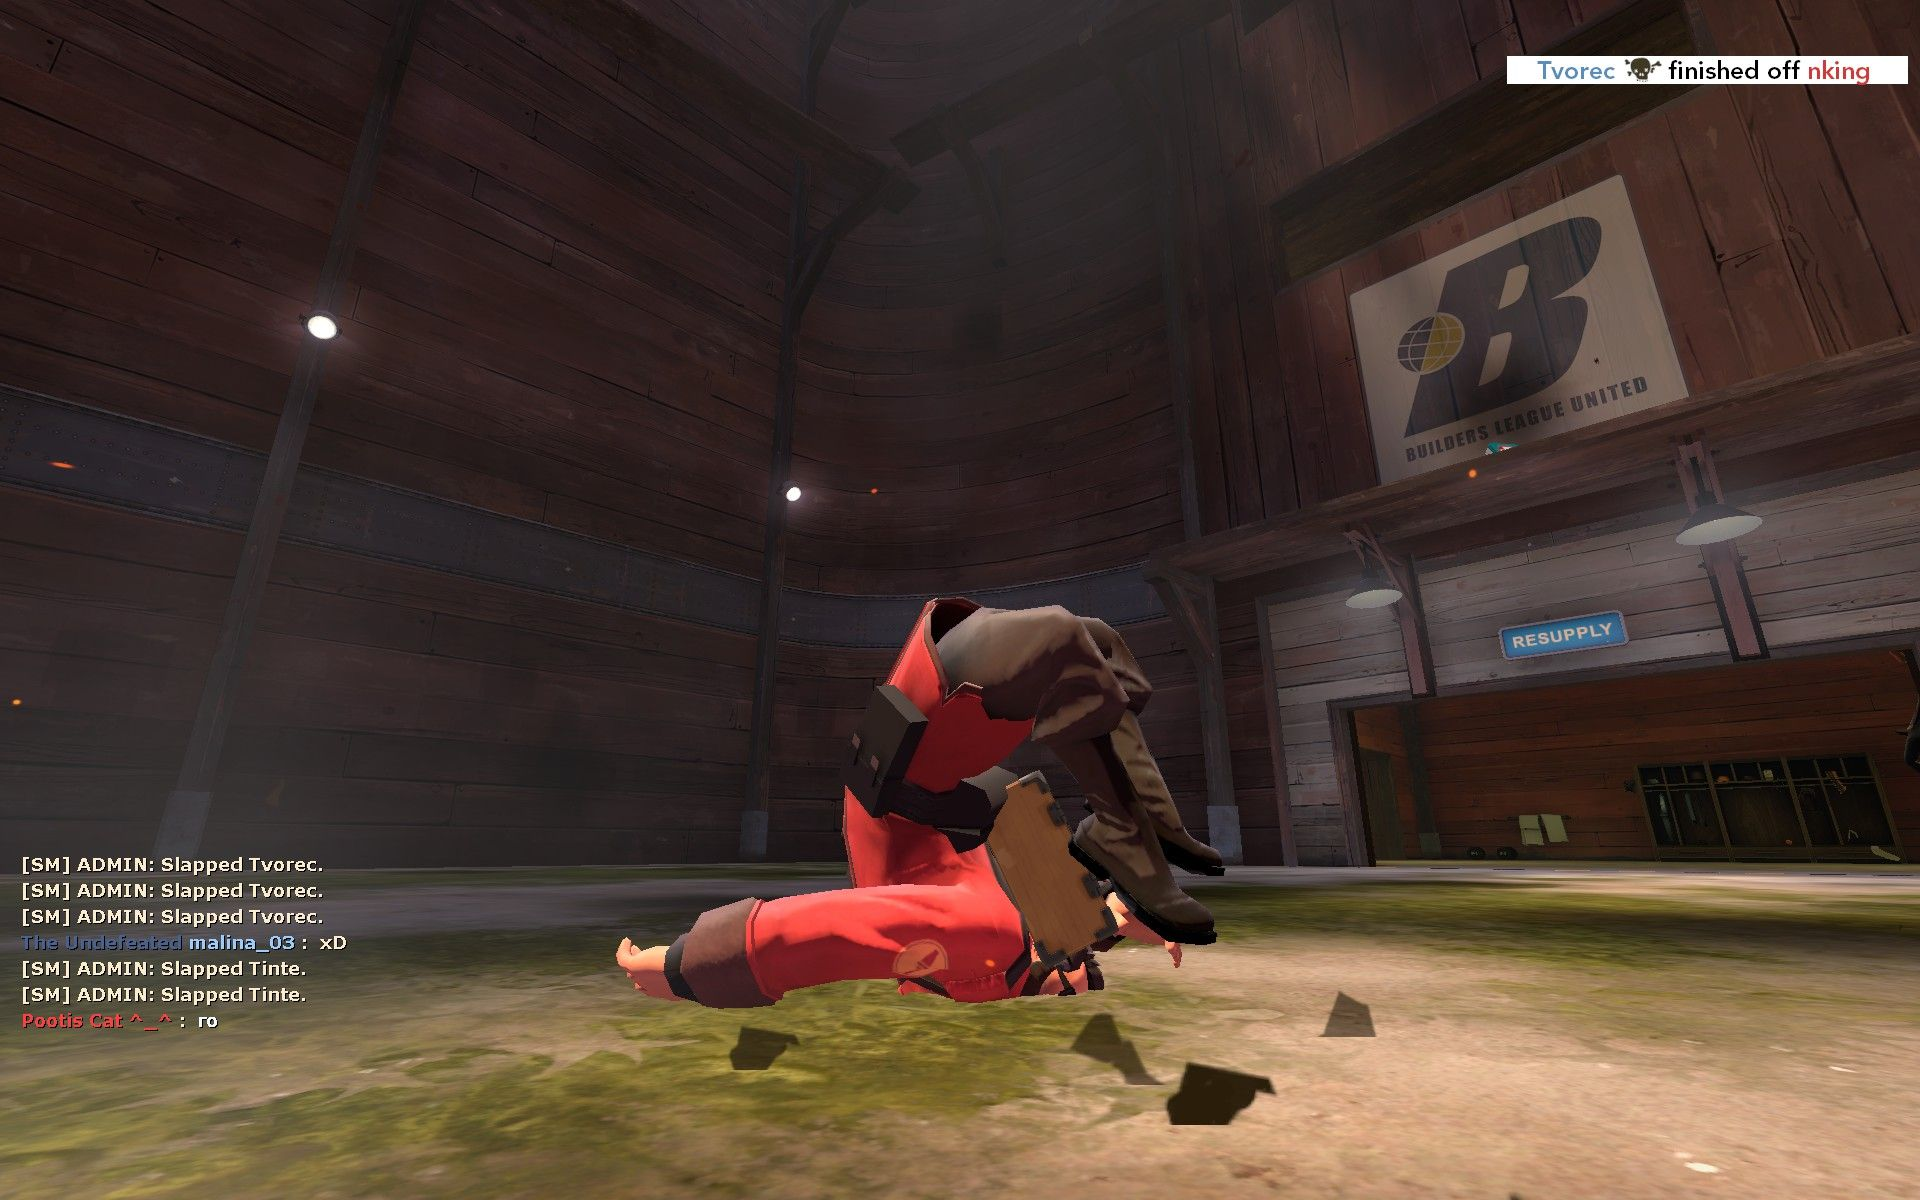 """""""Perfect landing!"""" #games #teamfortress2 #steam #tf2 #SteamNewRelease #gaming #Valve"""